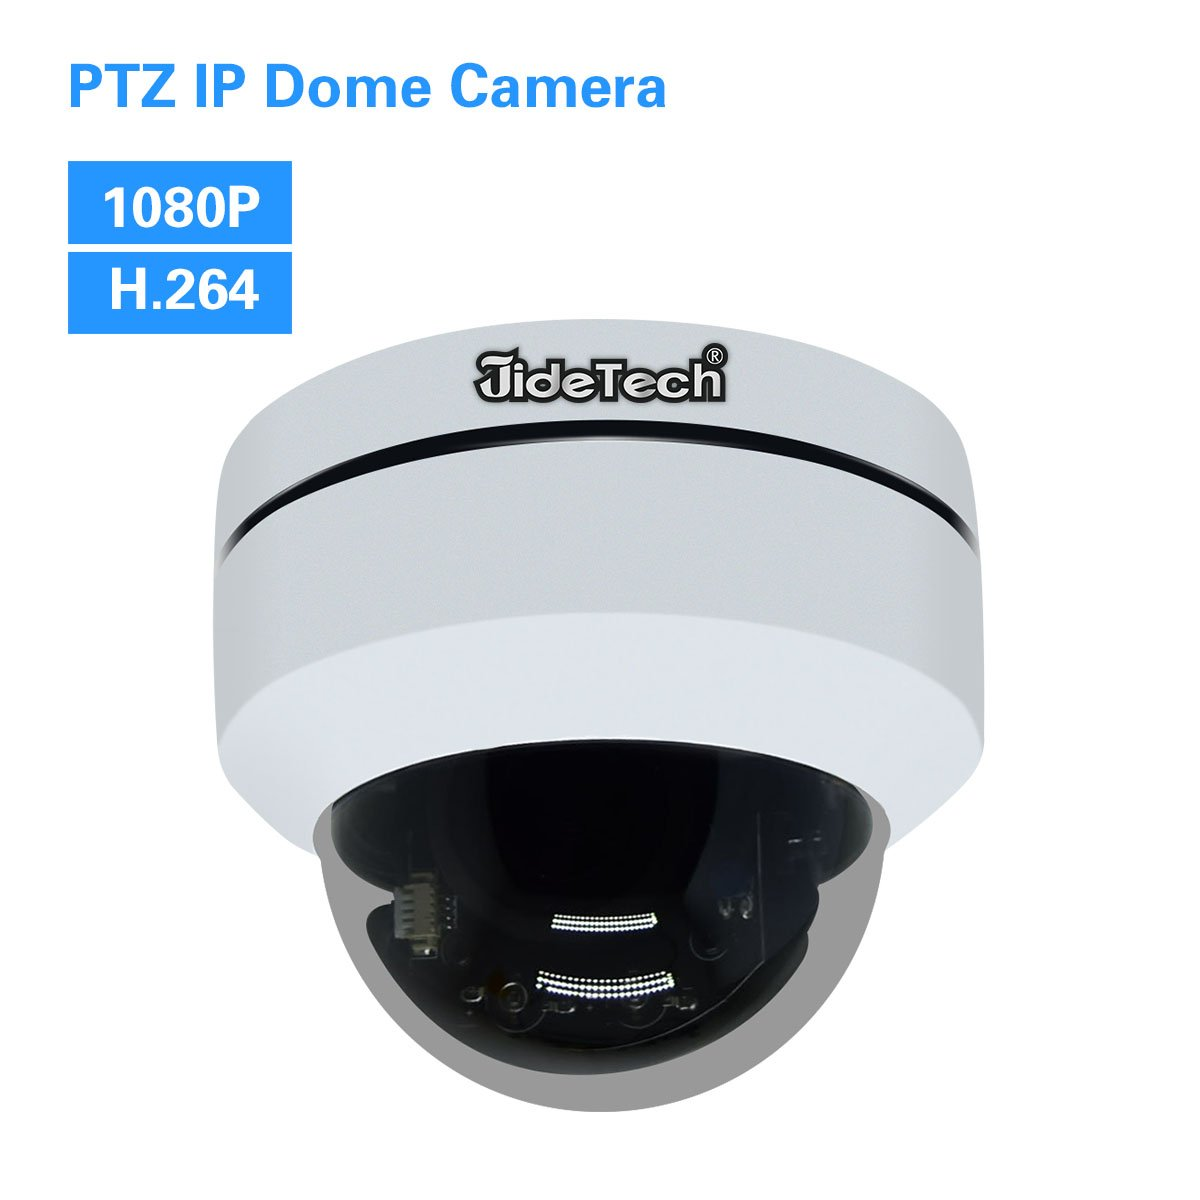 HD 1080P PTZ Outdoor POE Security IP Dome Camera with 3X Optical Zoom Pan/Tilt/3X Motorized Zoom, Dome Style for Ceiling Installation